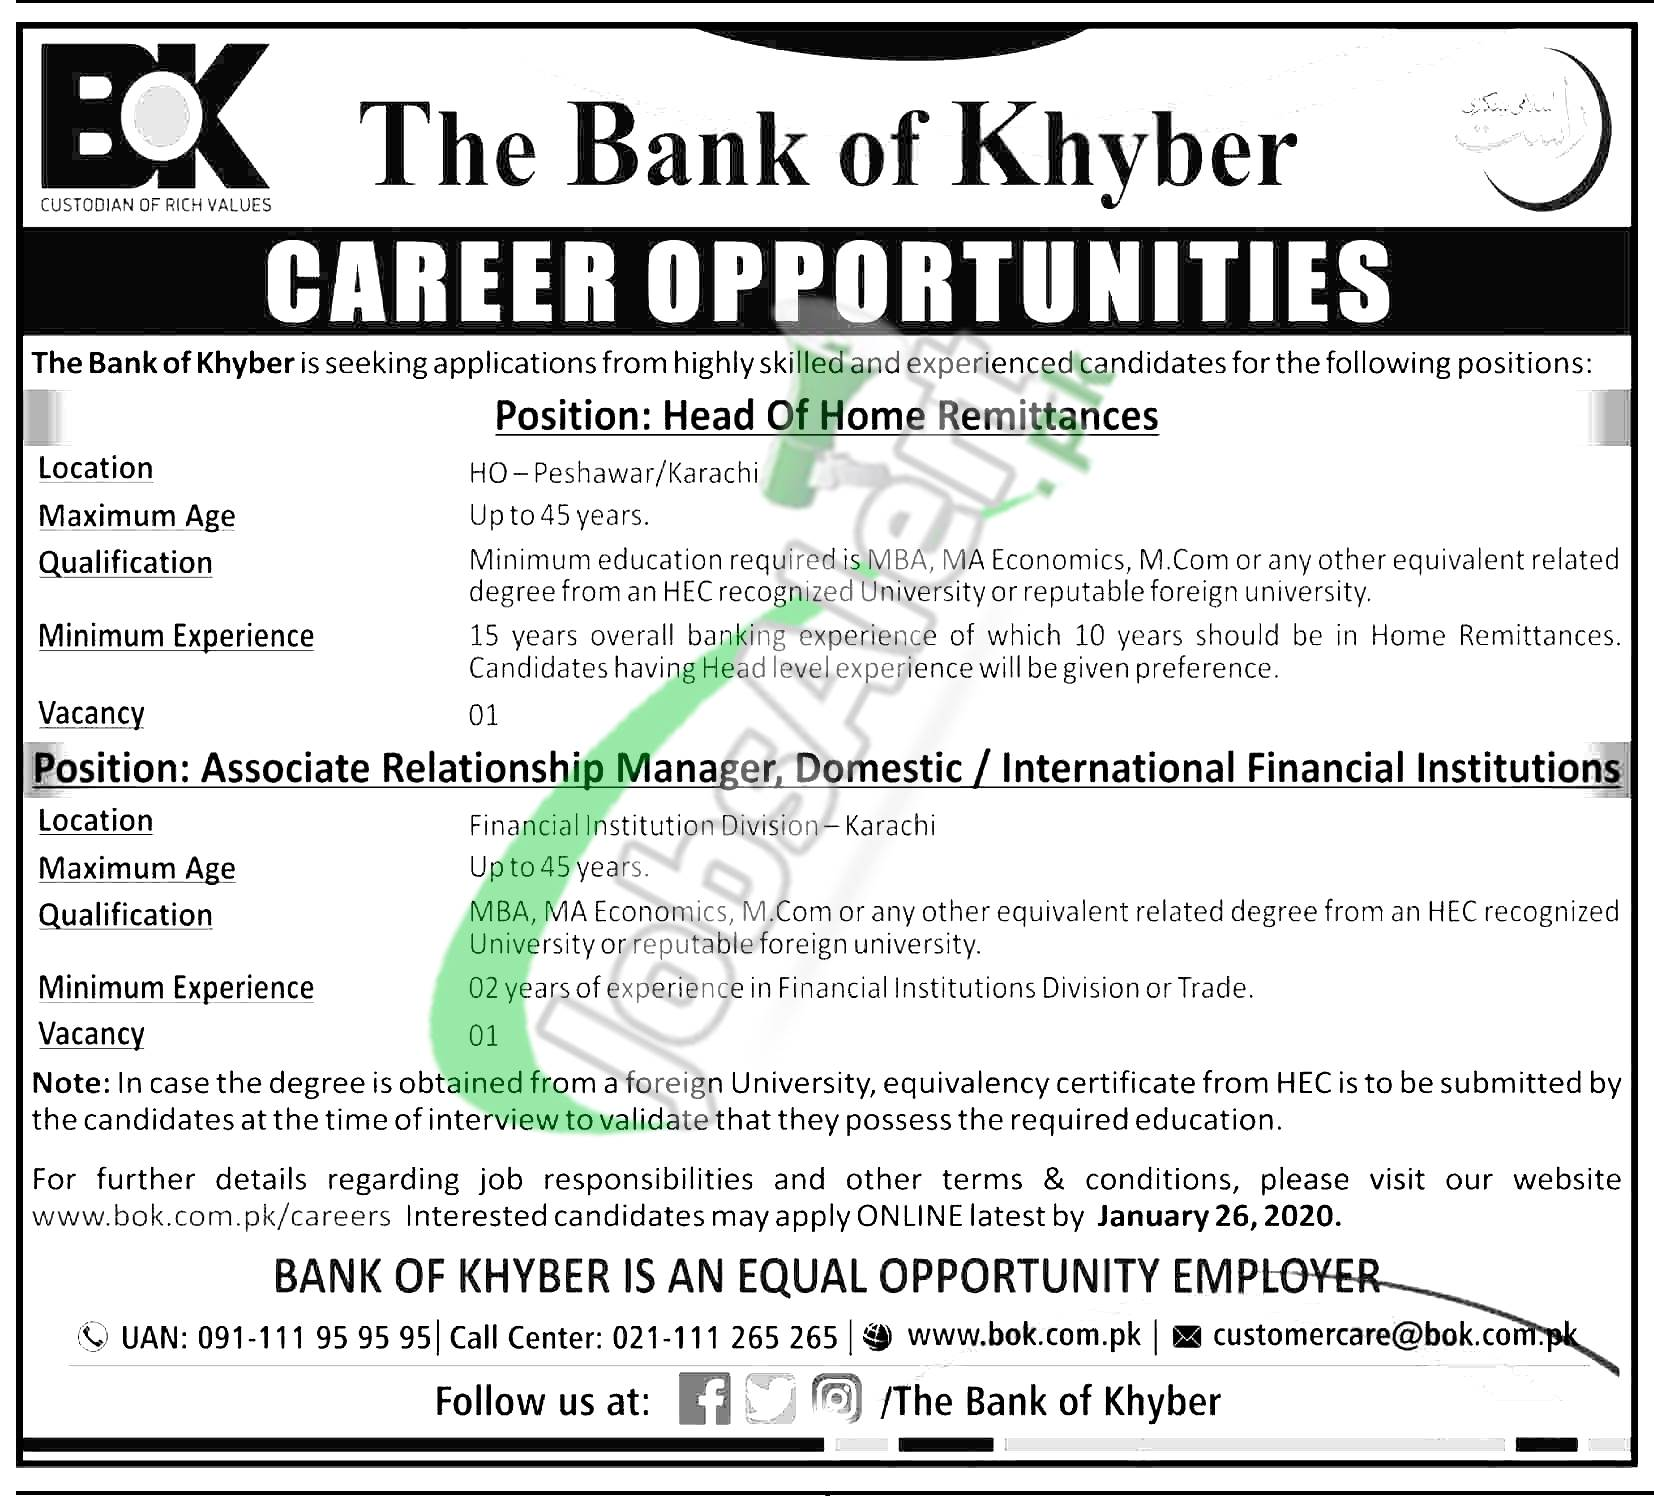 The Bank of Khyber Career Opportunities